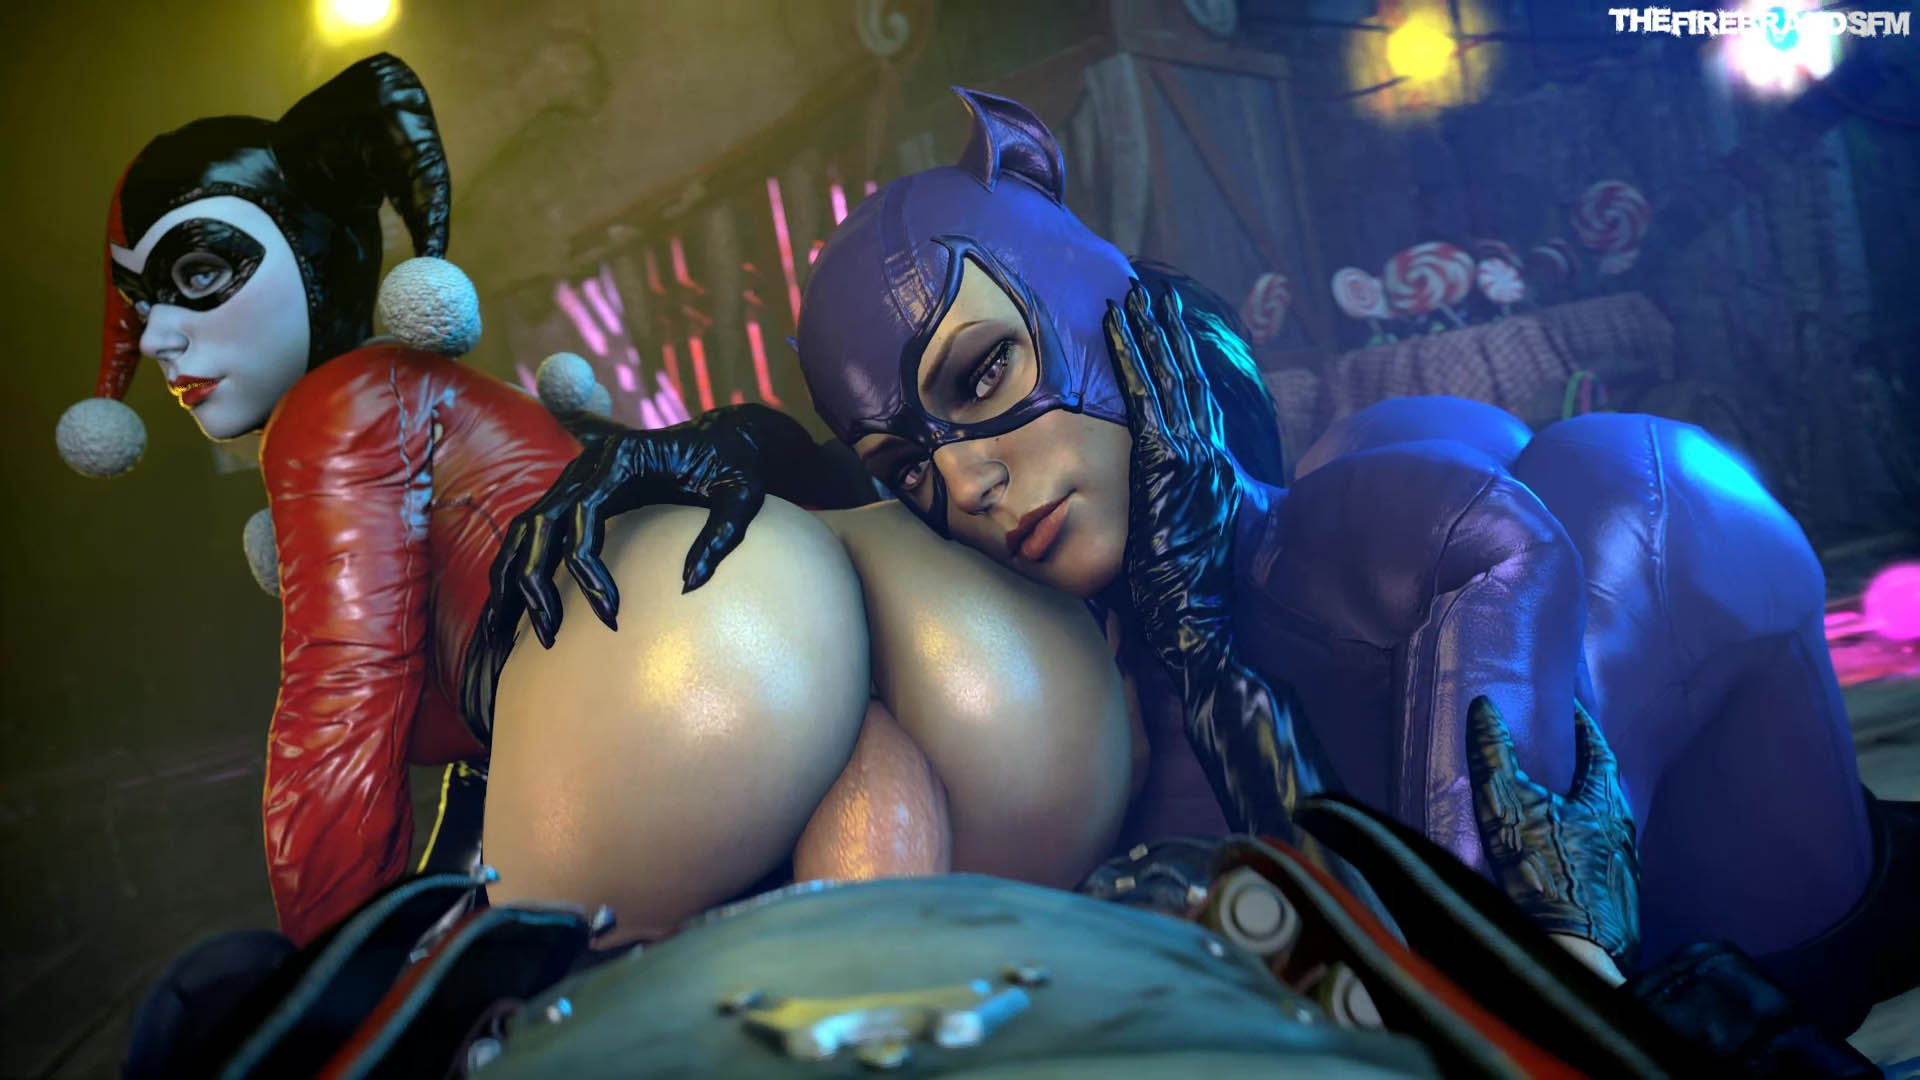 DC Comics - Harley And Catwoman At The Playground darkdreams vr porn video vrporn.com virtual reality